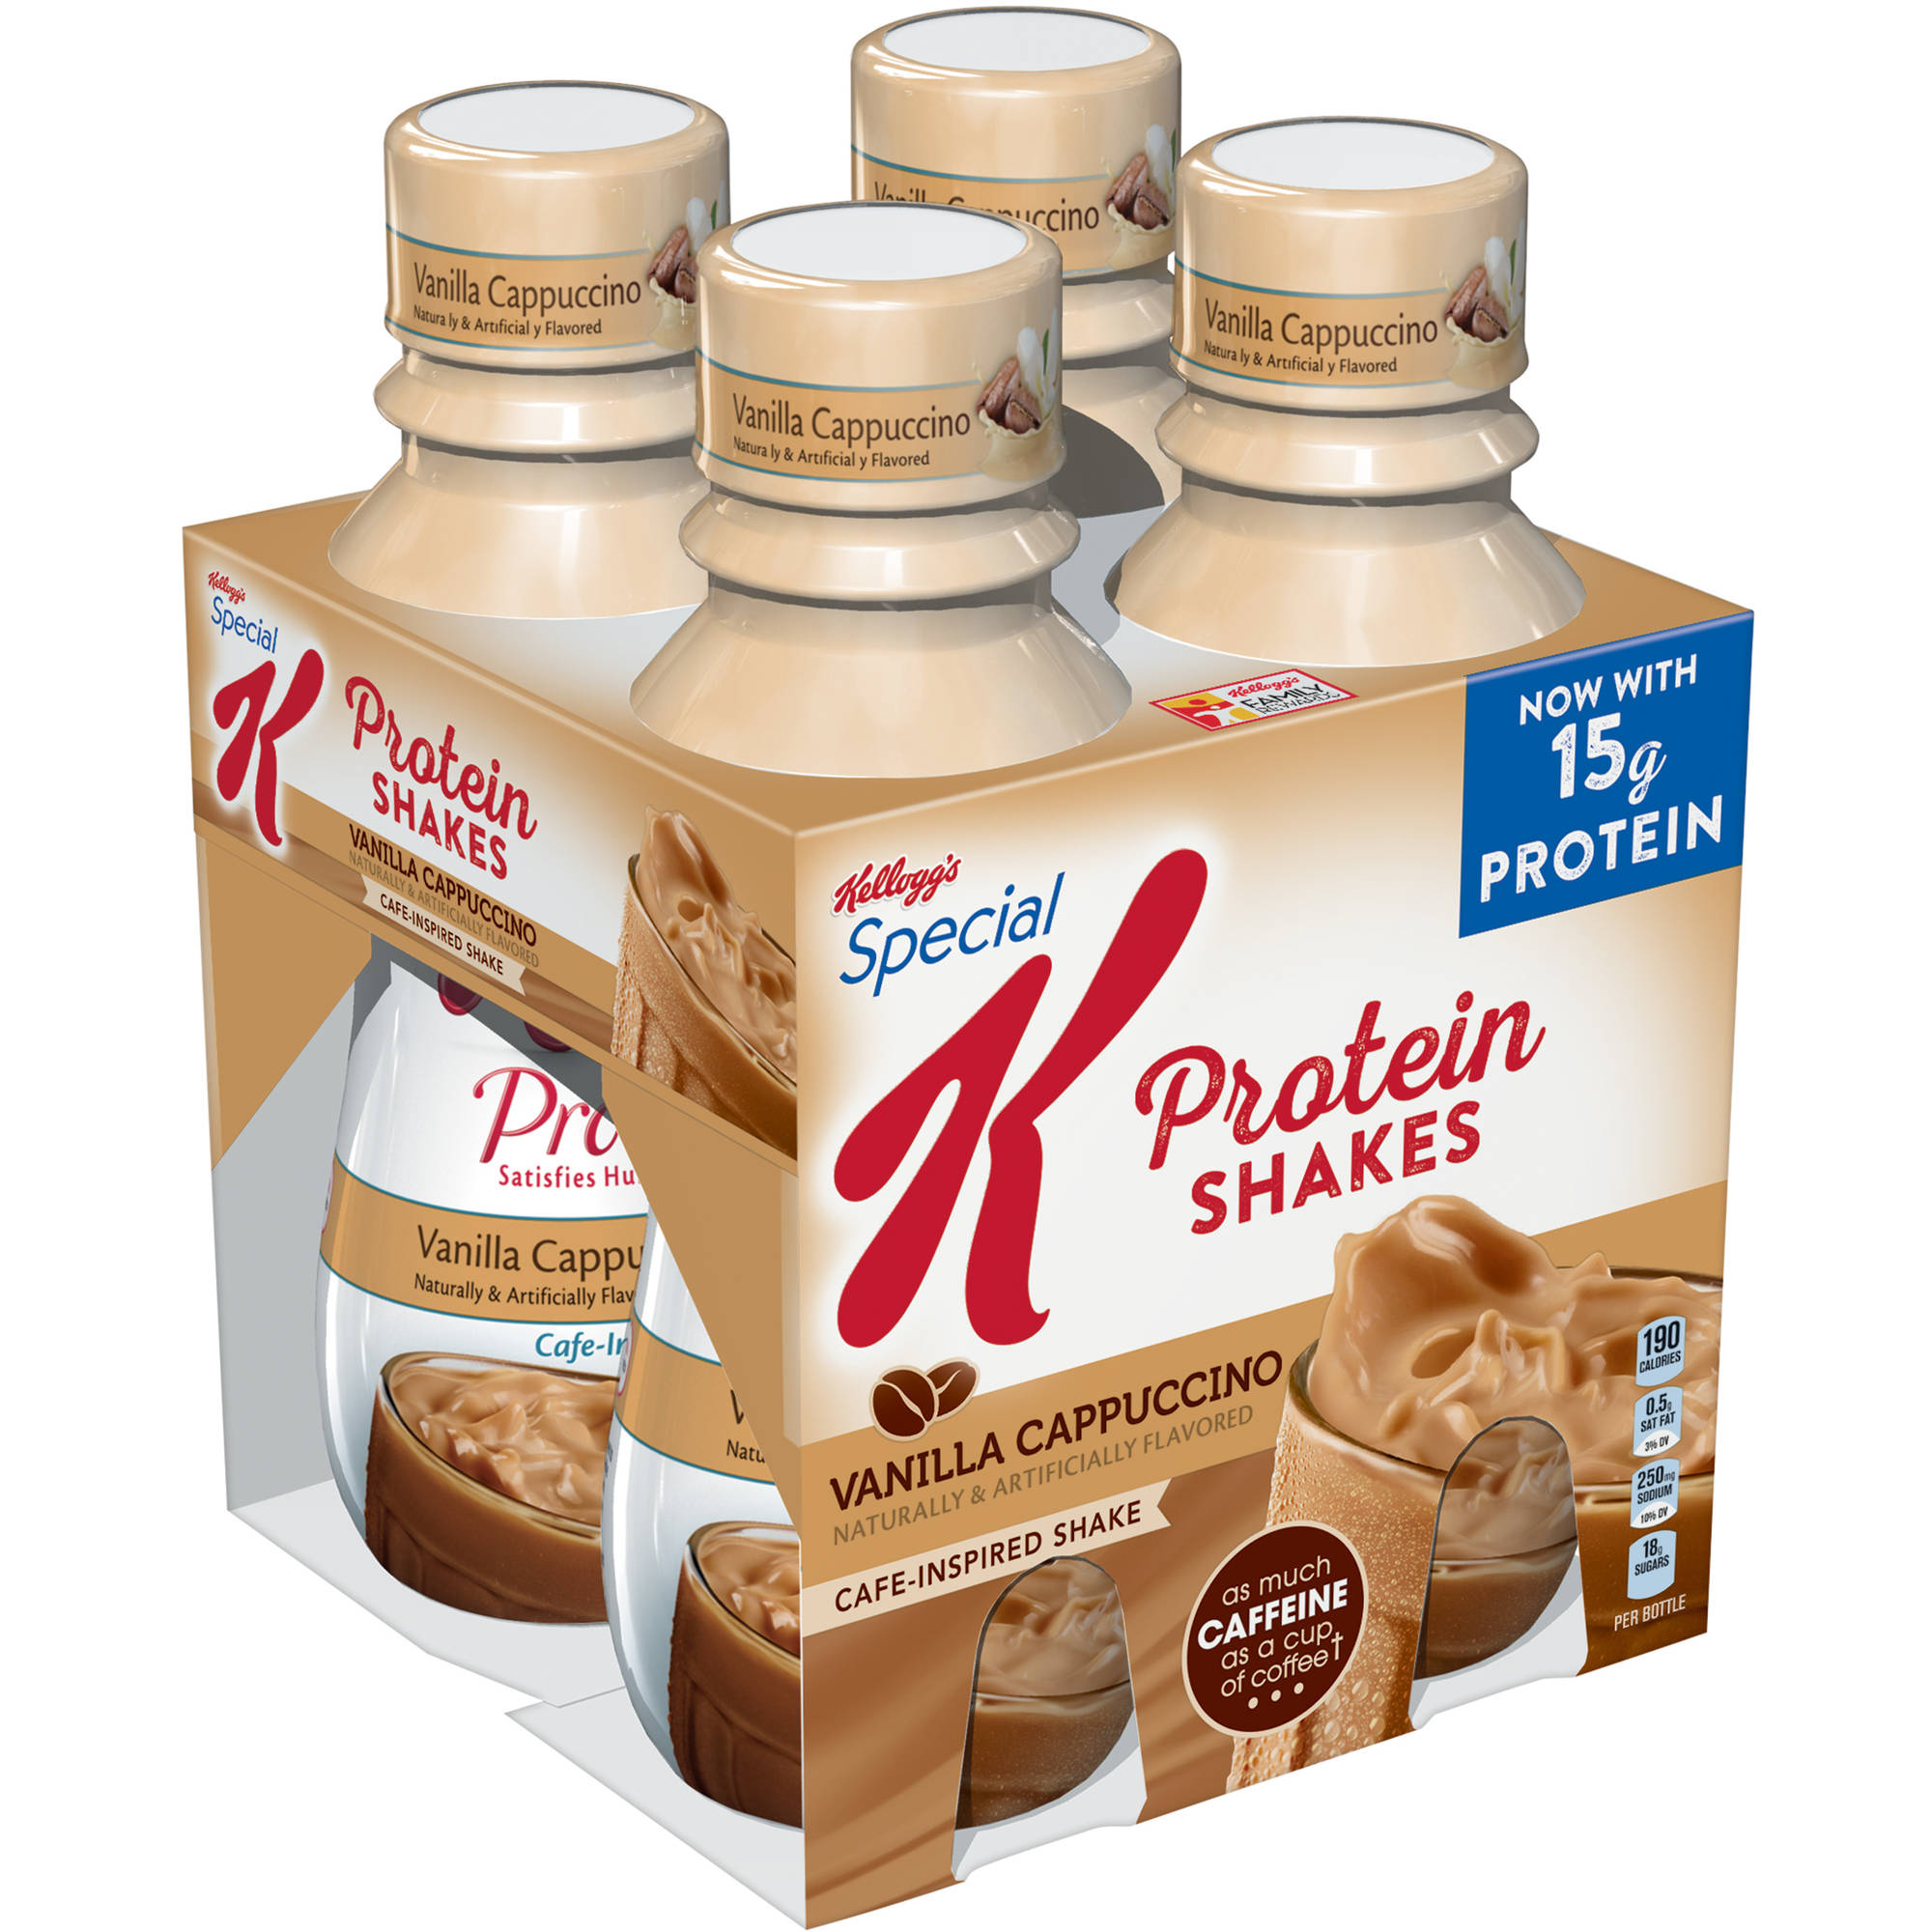 Kellogg's Special K Protein Vanilla Cappuccino Cafe-Inspired Shakes, 10 fl oz, 4 pack